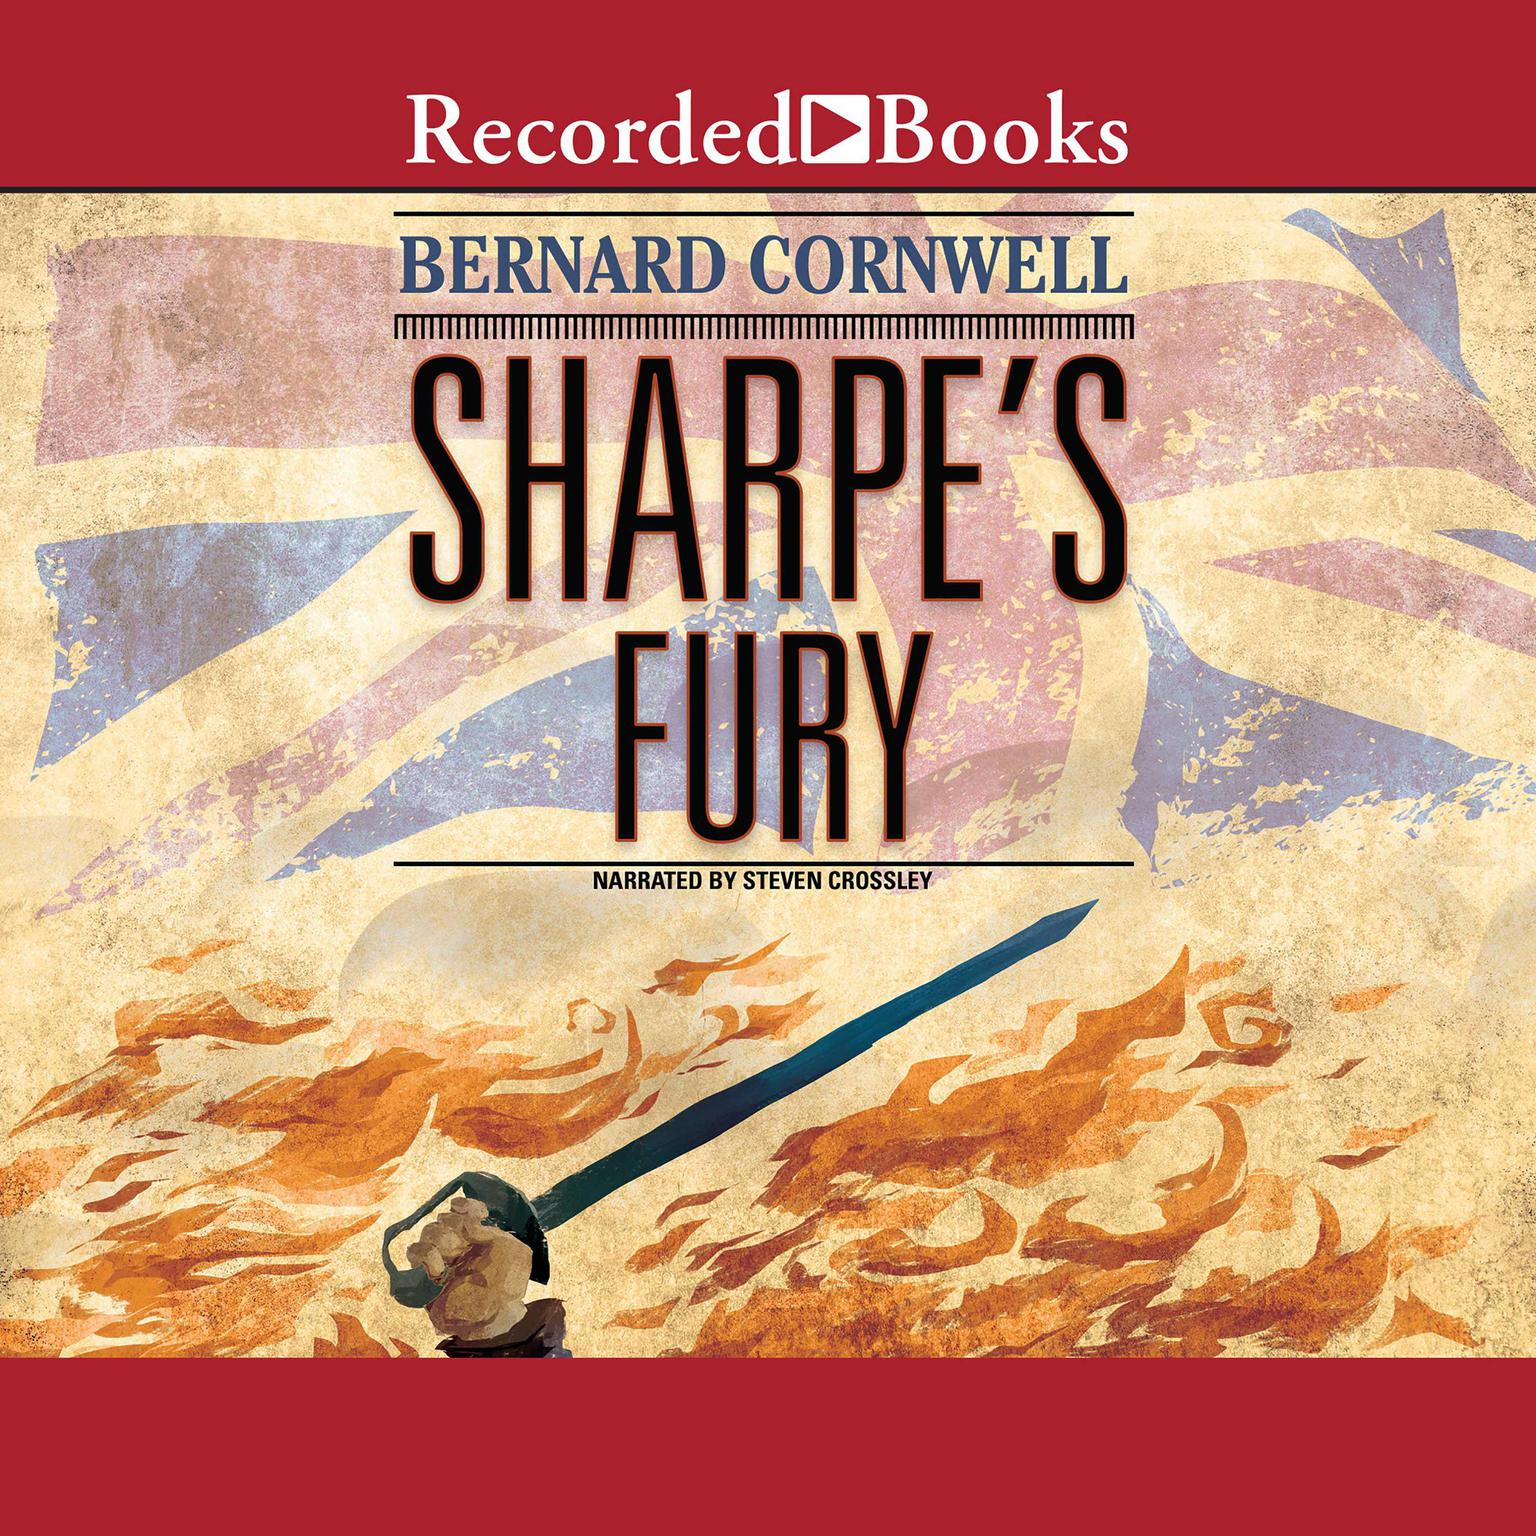 Printable Sharpe's Fury: Richard Sharpe and the Battle of Barrosa, March 1811 Audiobook Cover Art